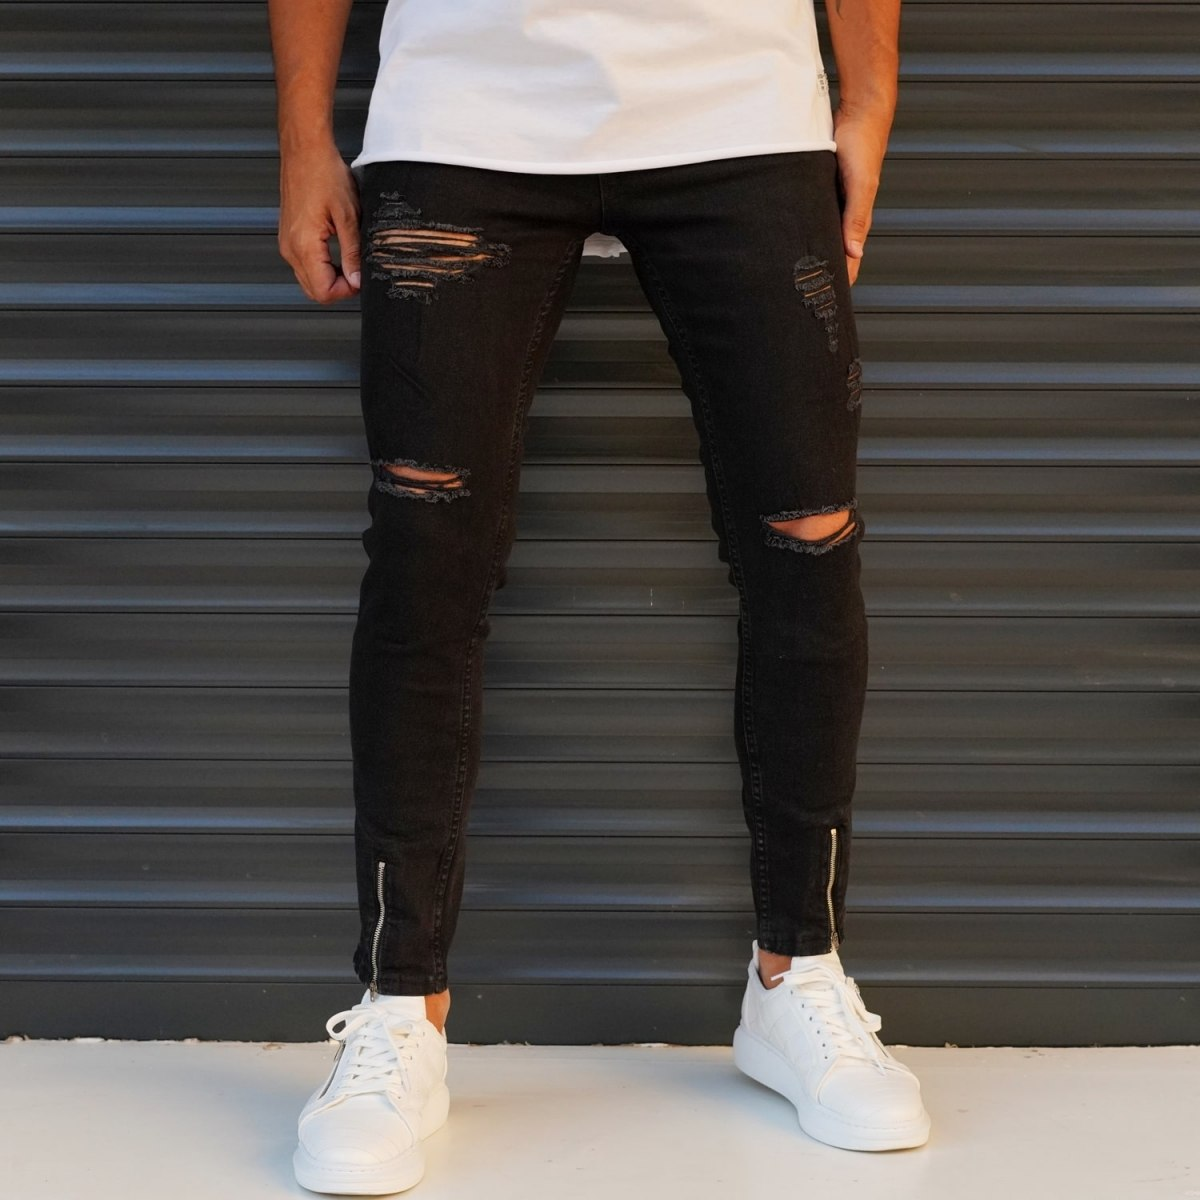 Men's Jeans With Rips In Black